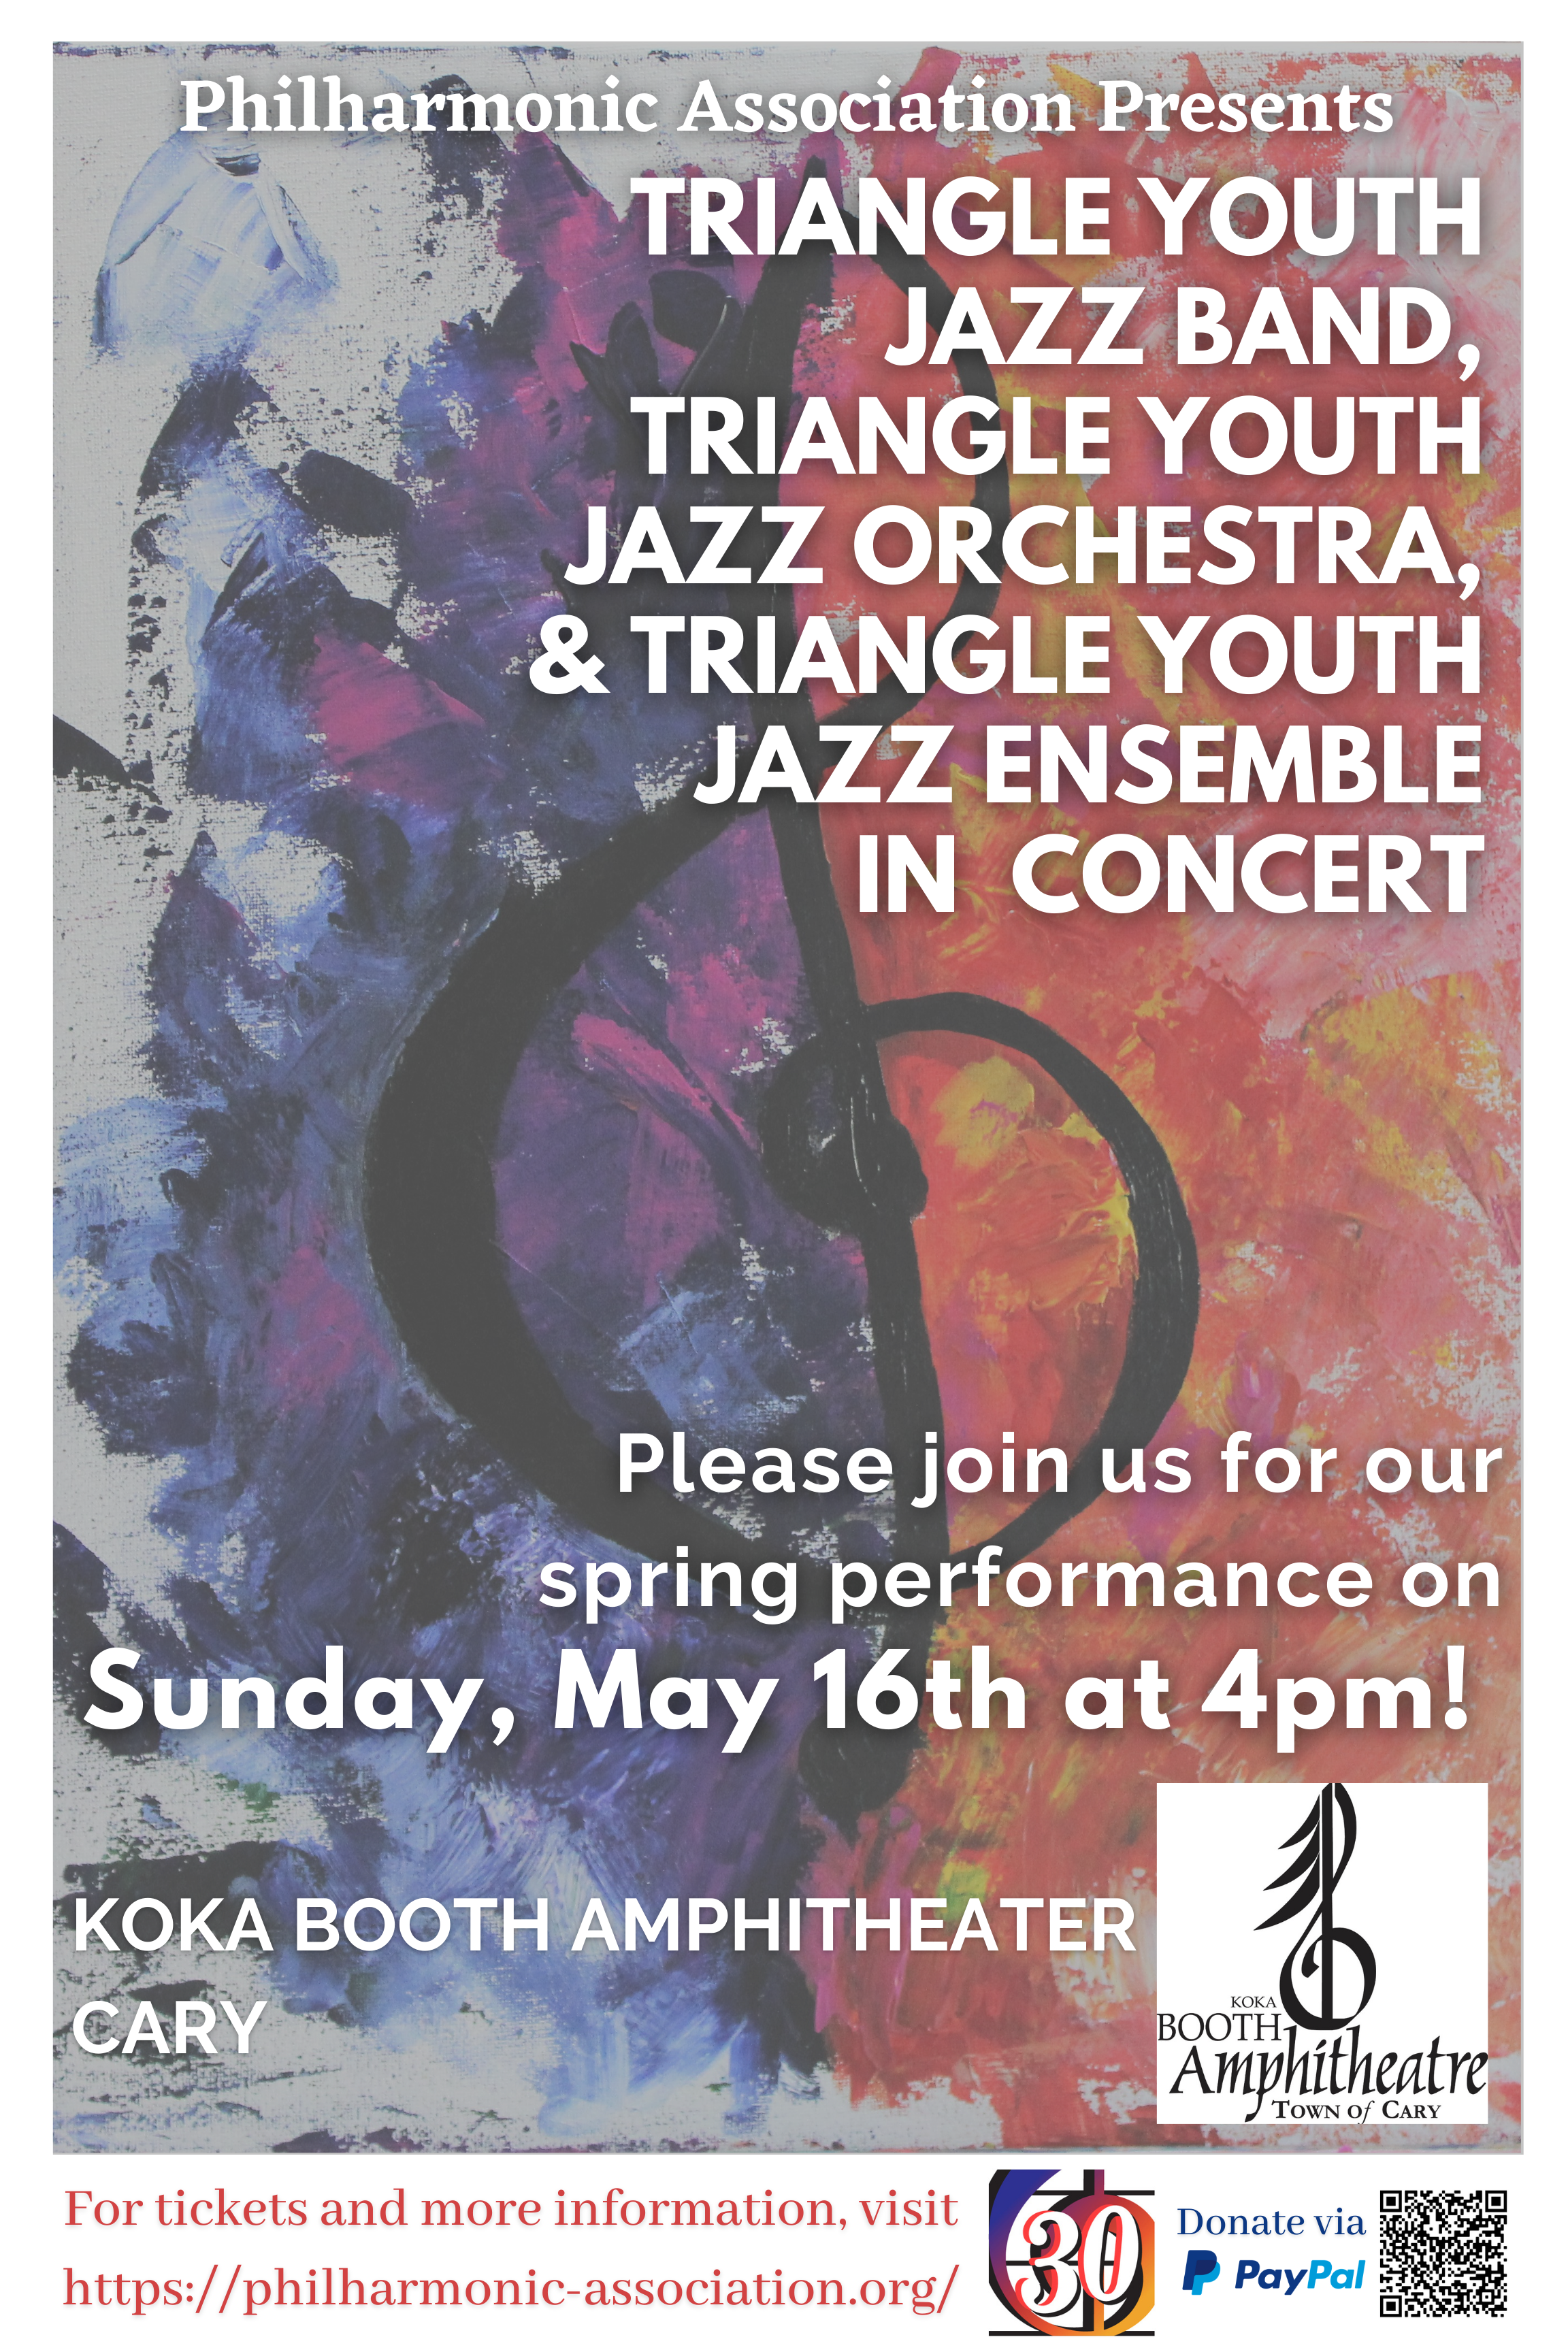 flier advertising jazz concert Sunday May 156 at 4pm